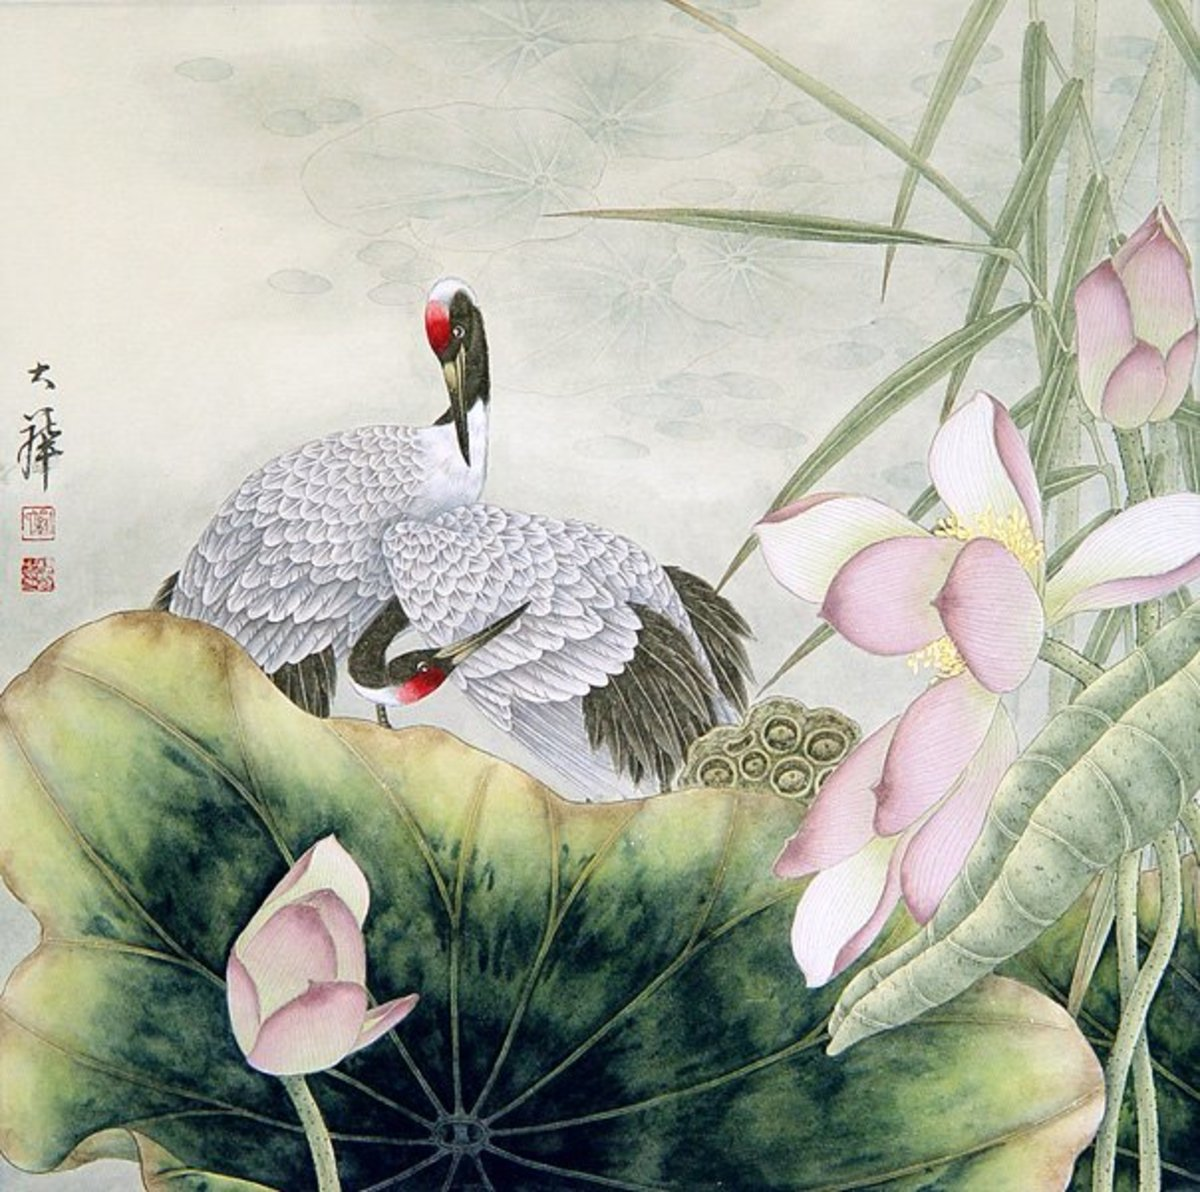 Cranes are symbols of good luck in Chinese tradition of Feng shui